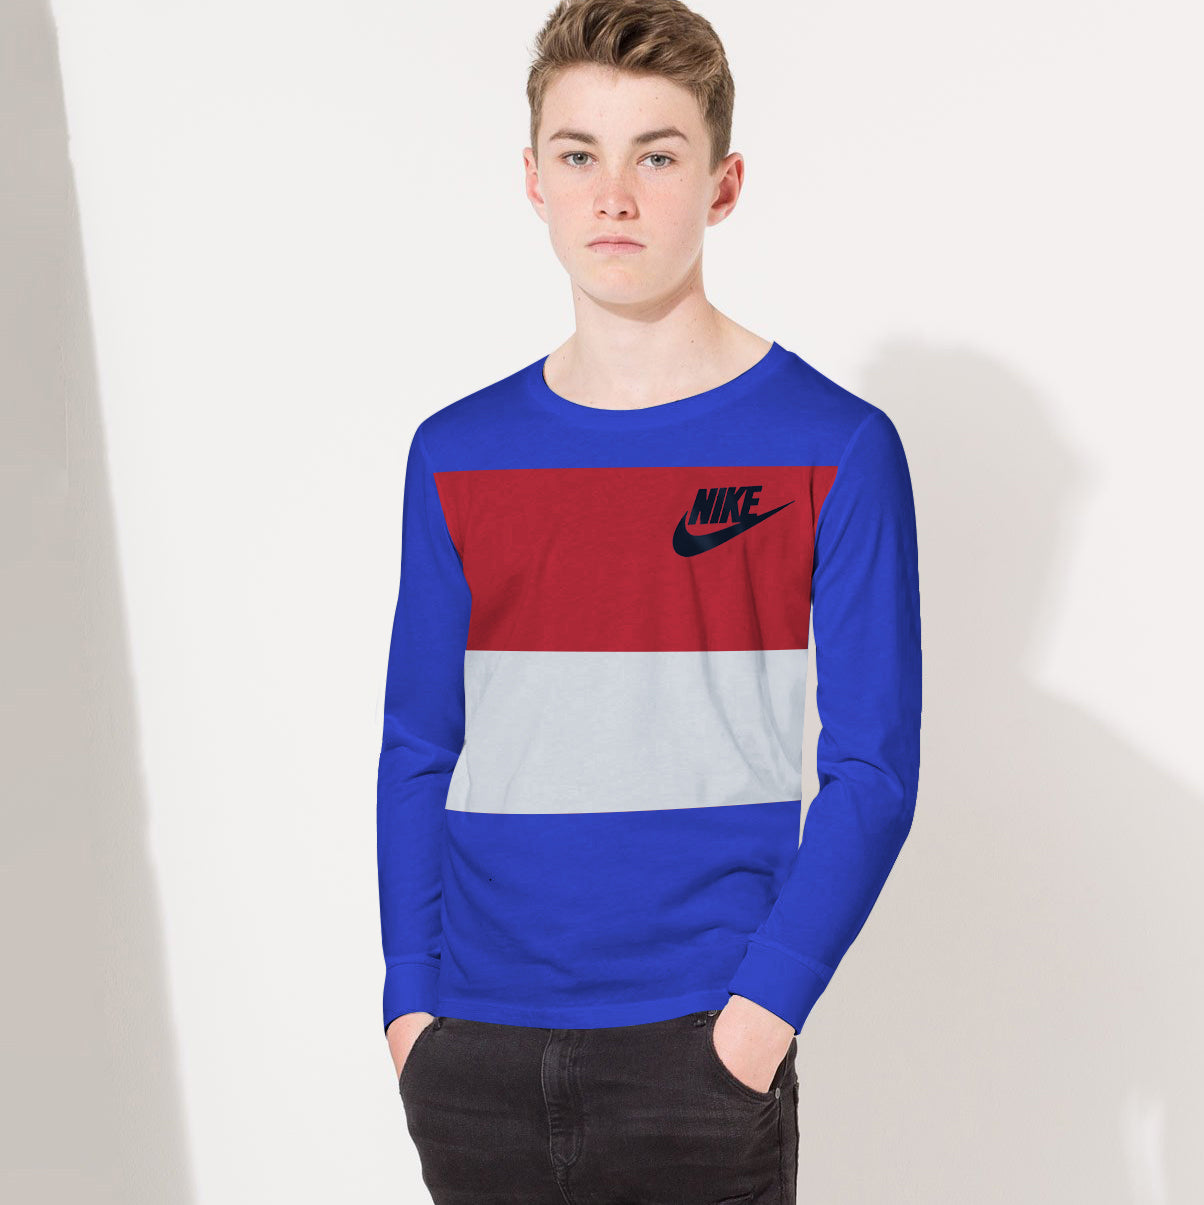 NK Crew Neck Single Jersey Long Sleeve Long Tee Shirt For Boys-Dark Blue with Red & Grey Panels-BE11863